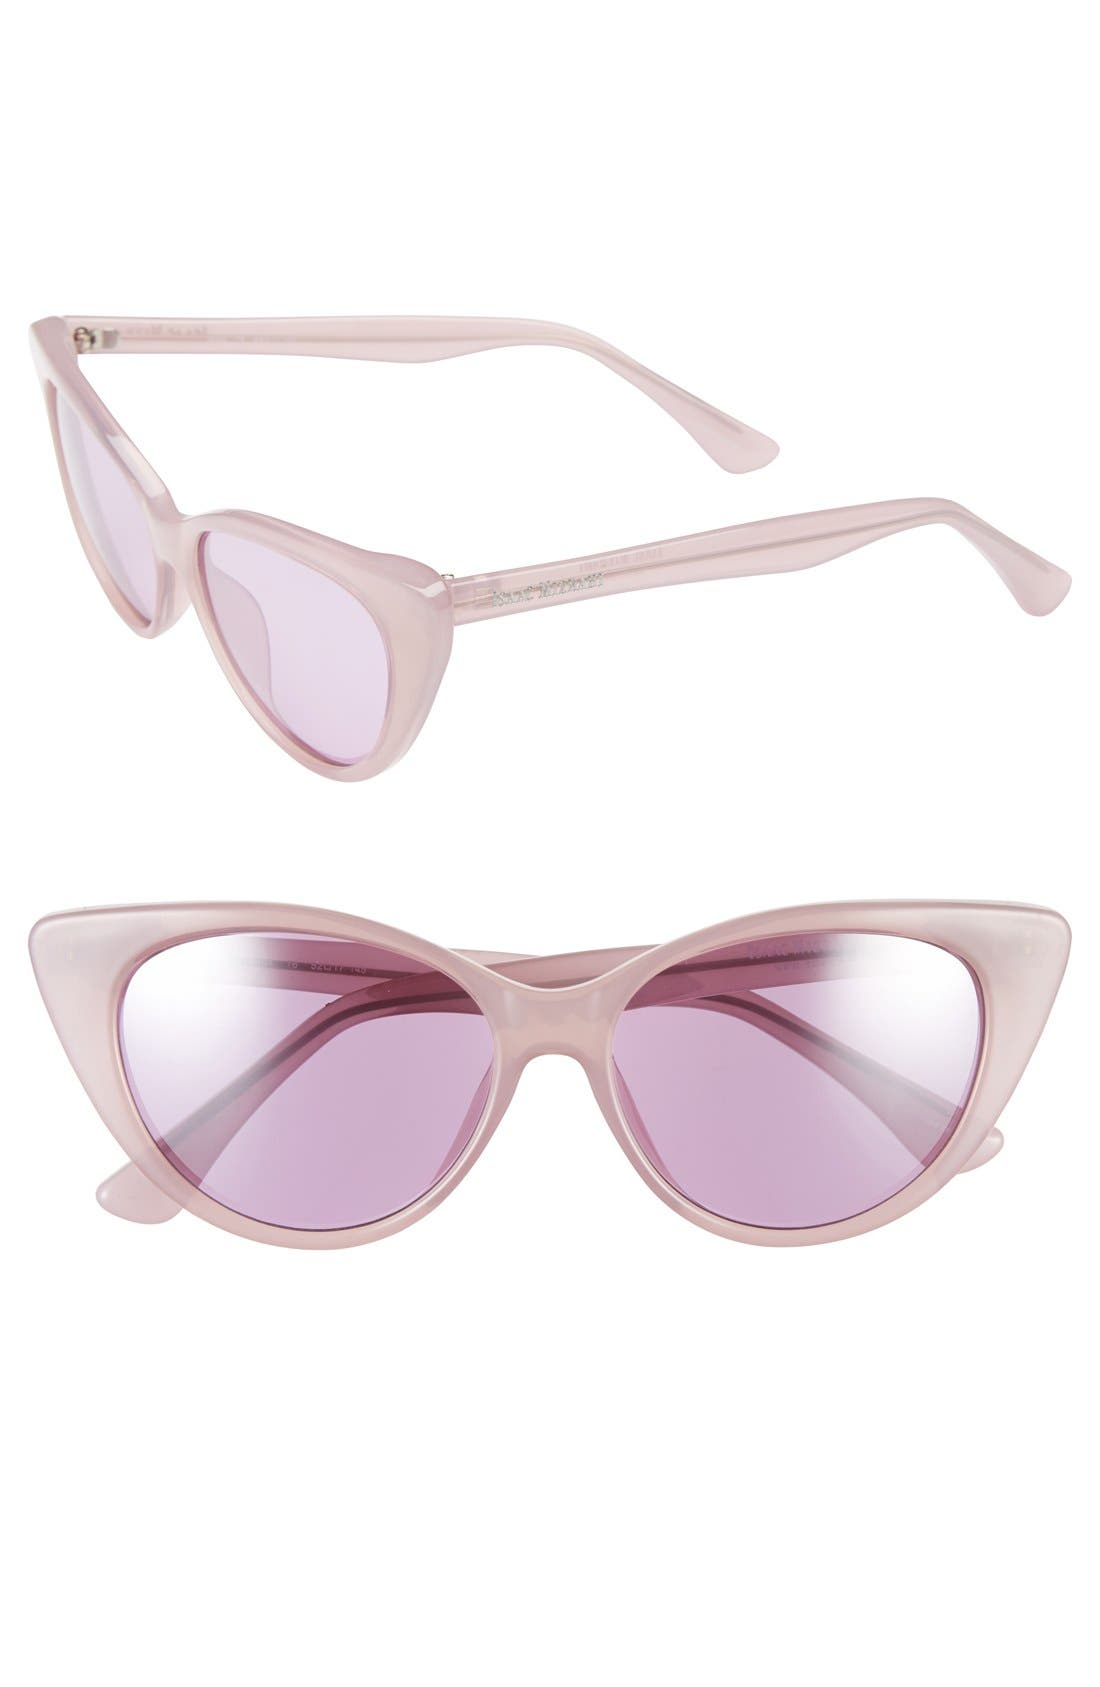 Alternate Image 1 Selected - Isaac Mizrahi New York 52mm Cat Eye Sunglasses